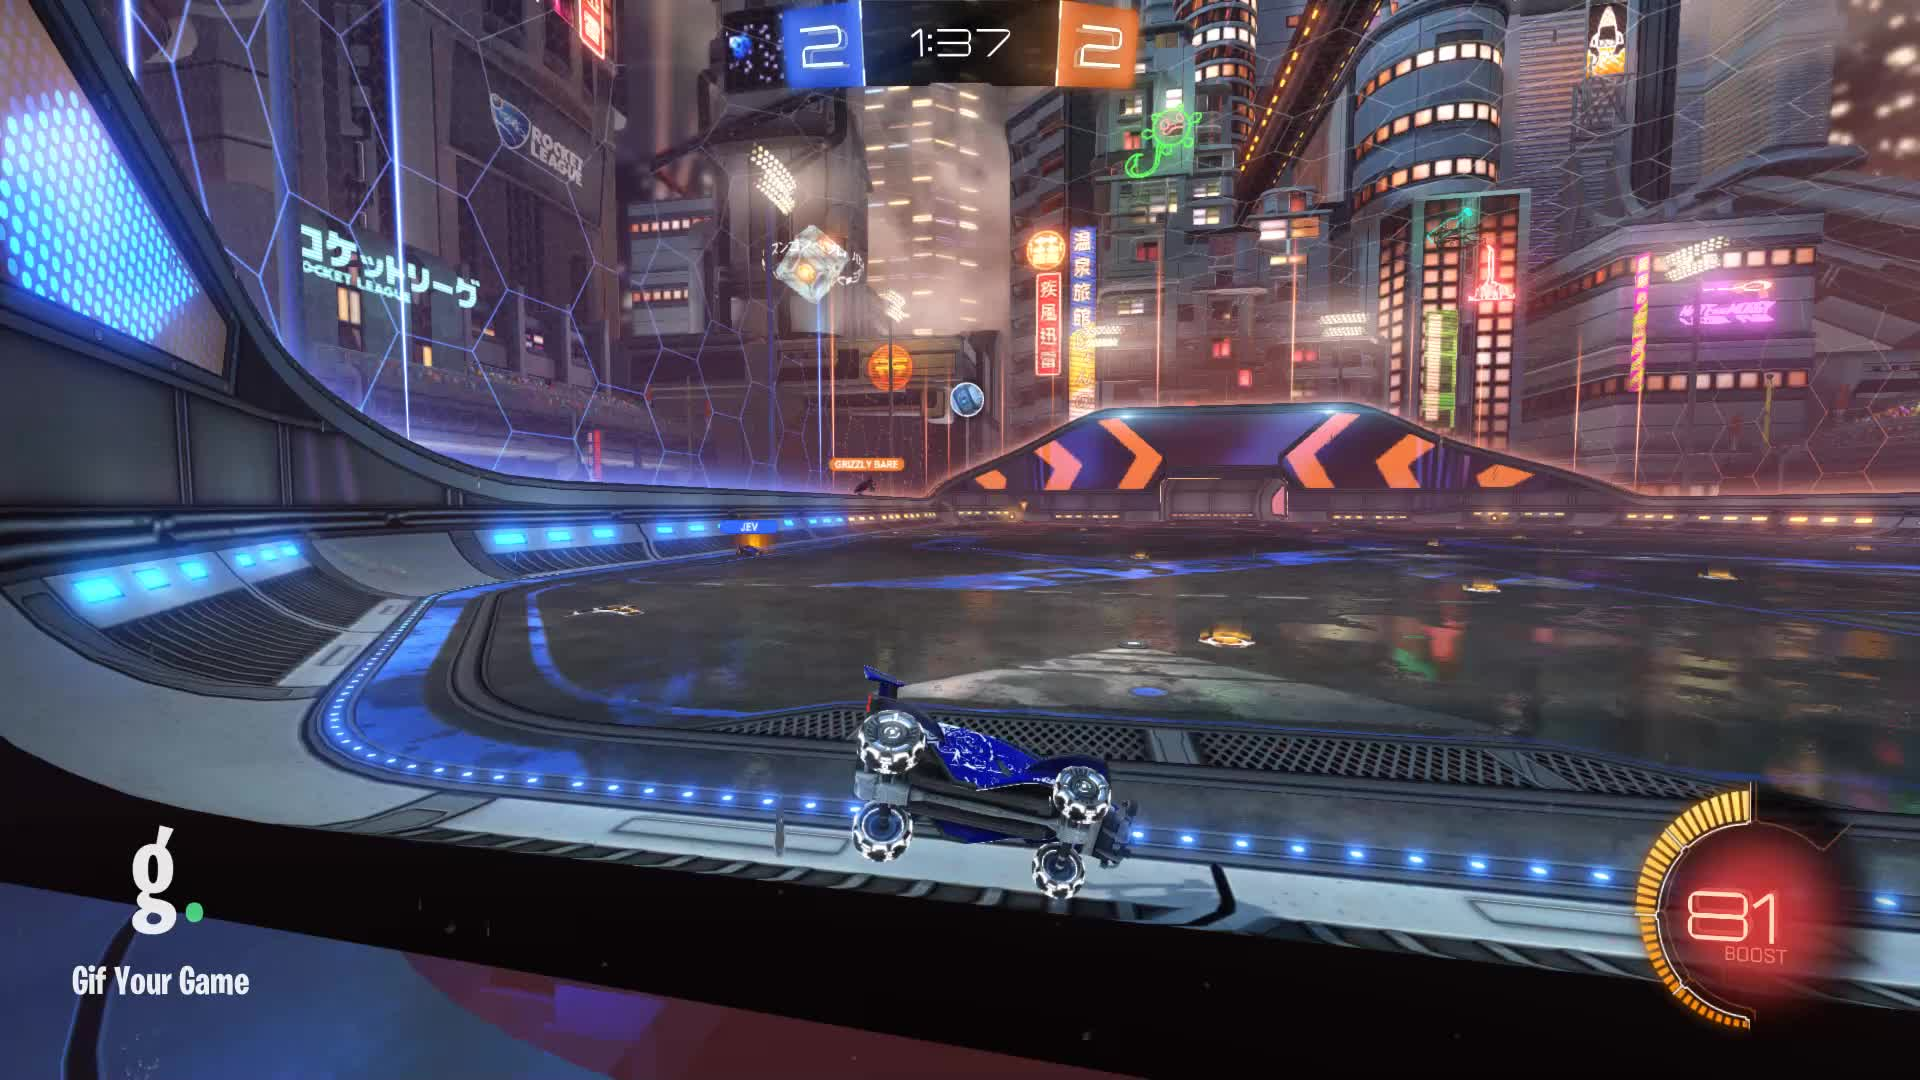 Gif Your Game, GifYourGame, Goal, Rocket League, RocketLeague, Styrrell, Goal 5: Grizzly Bare GIFs